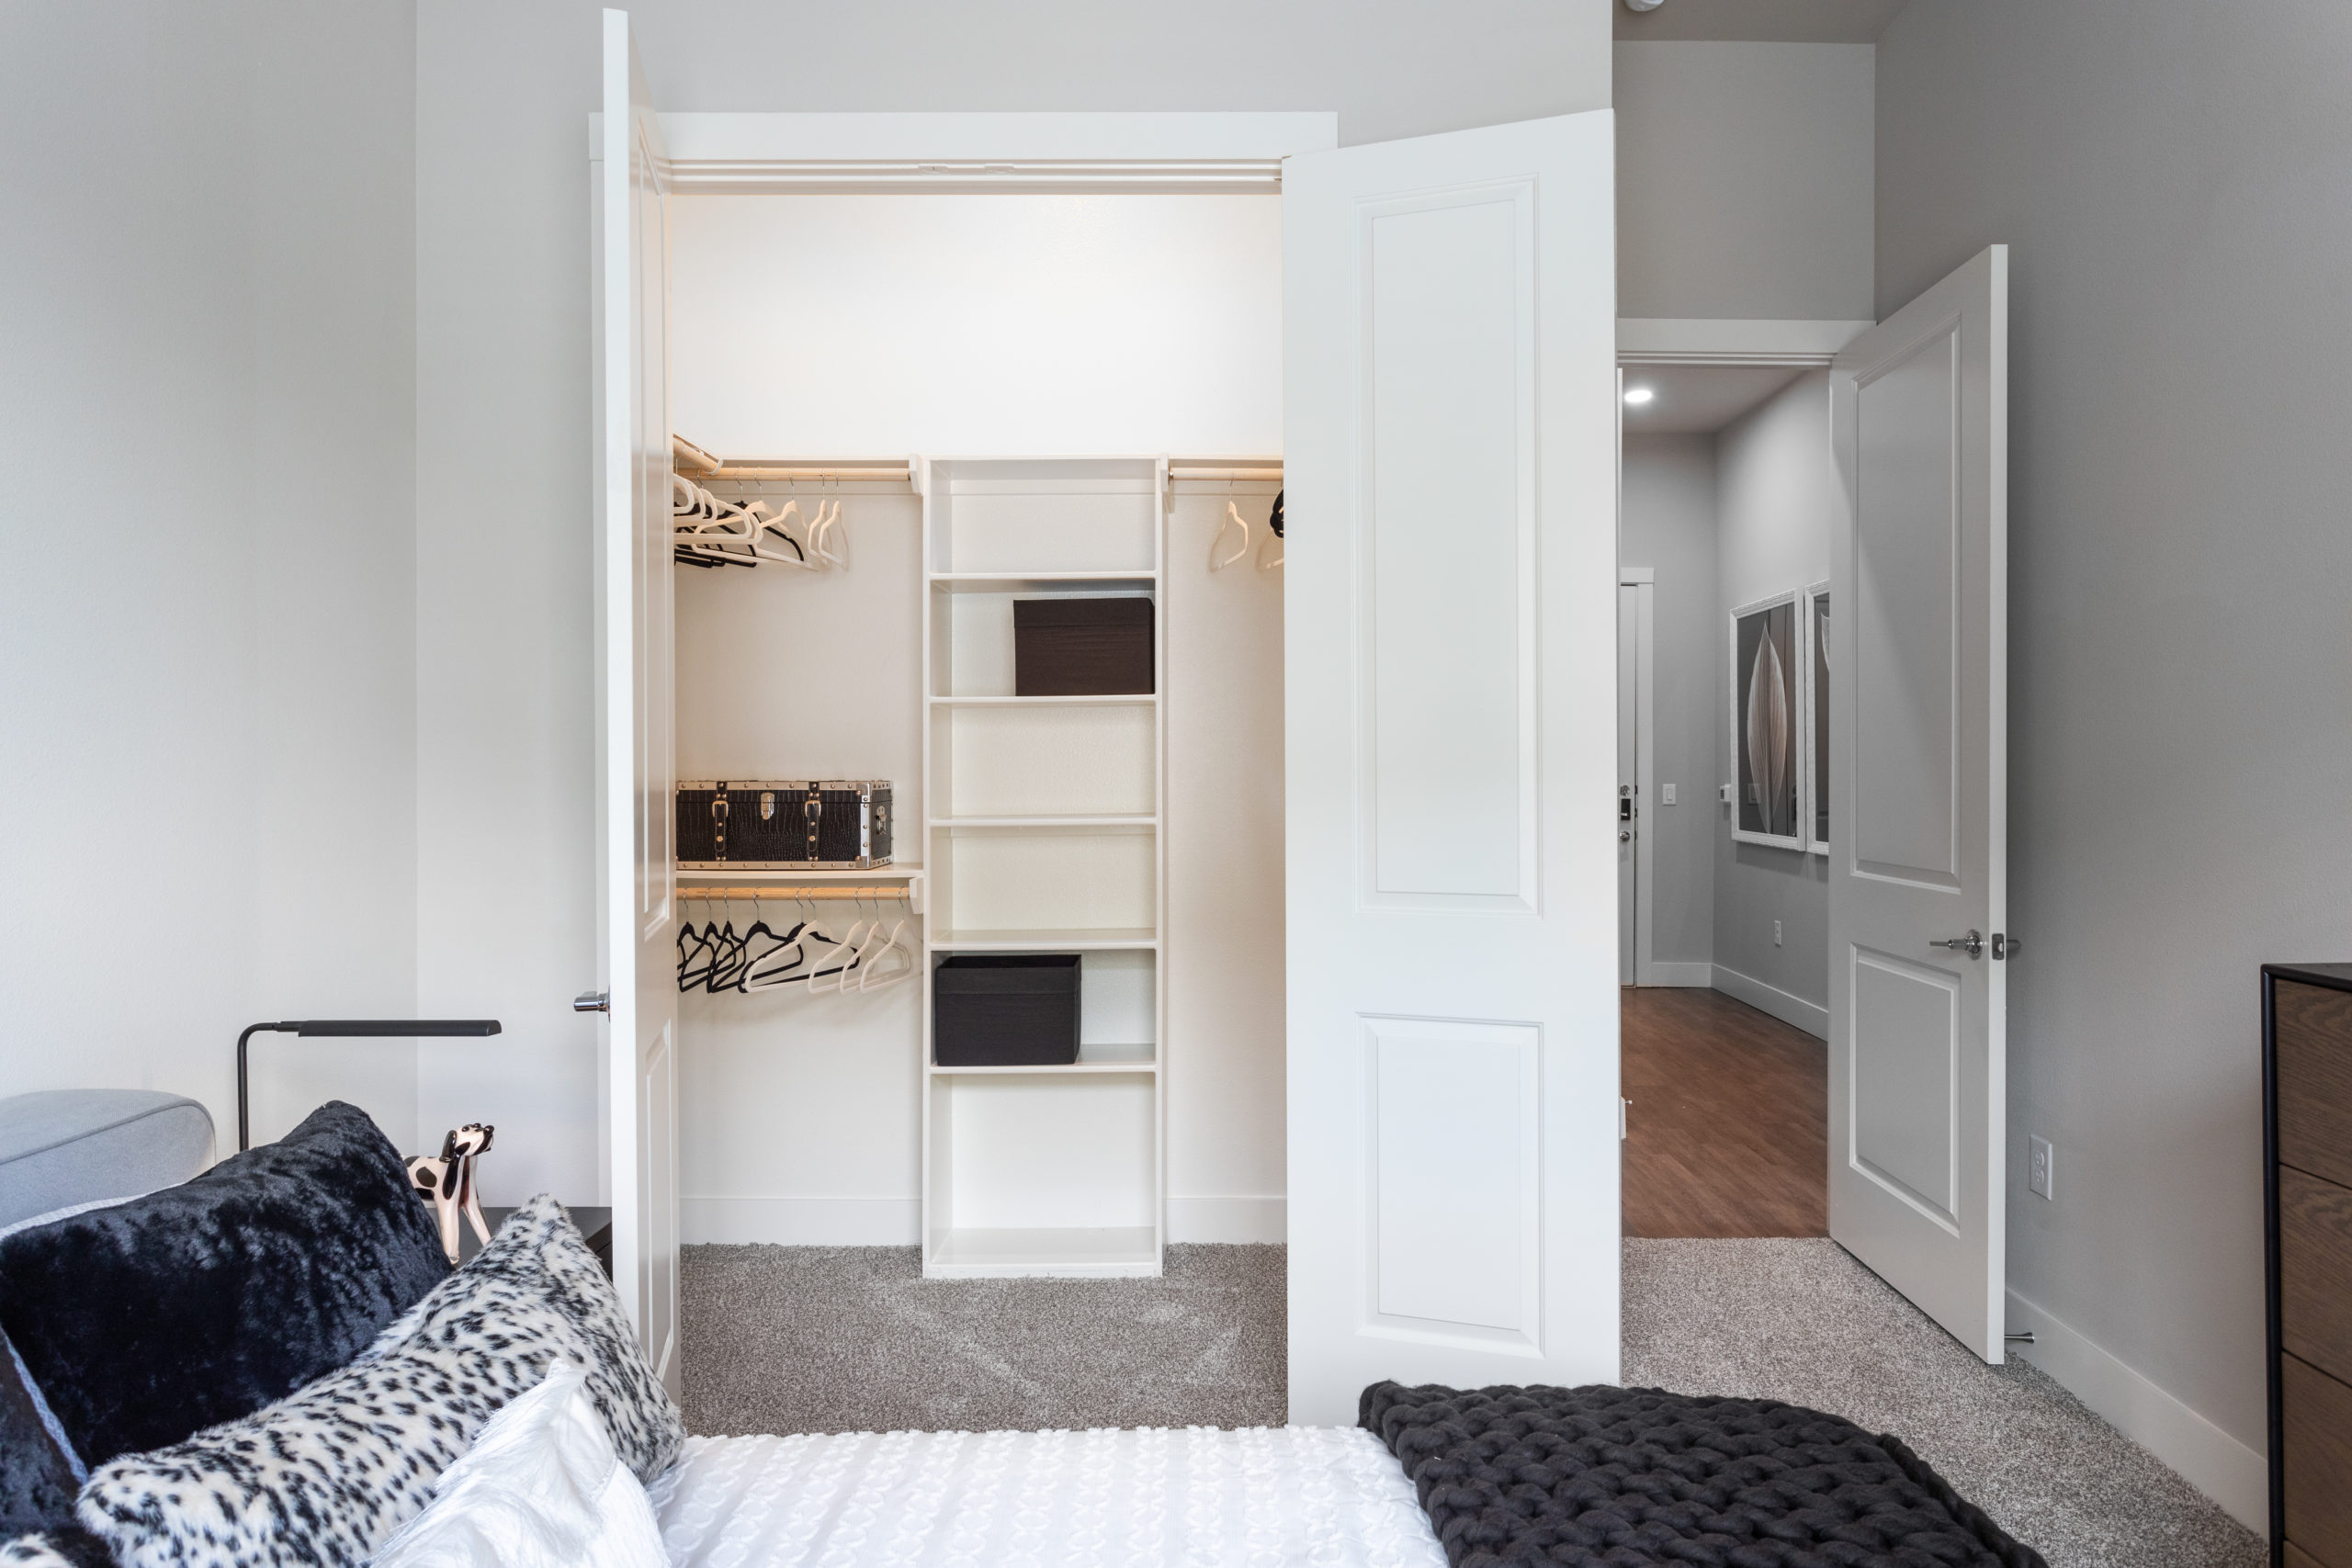 How to Maximize Closet Space in an Apartment